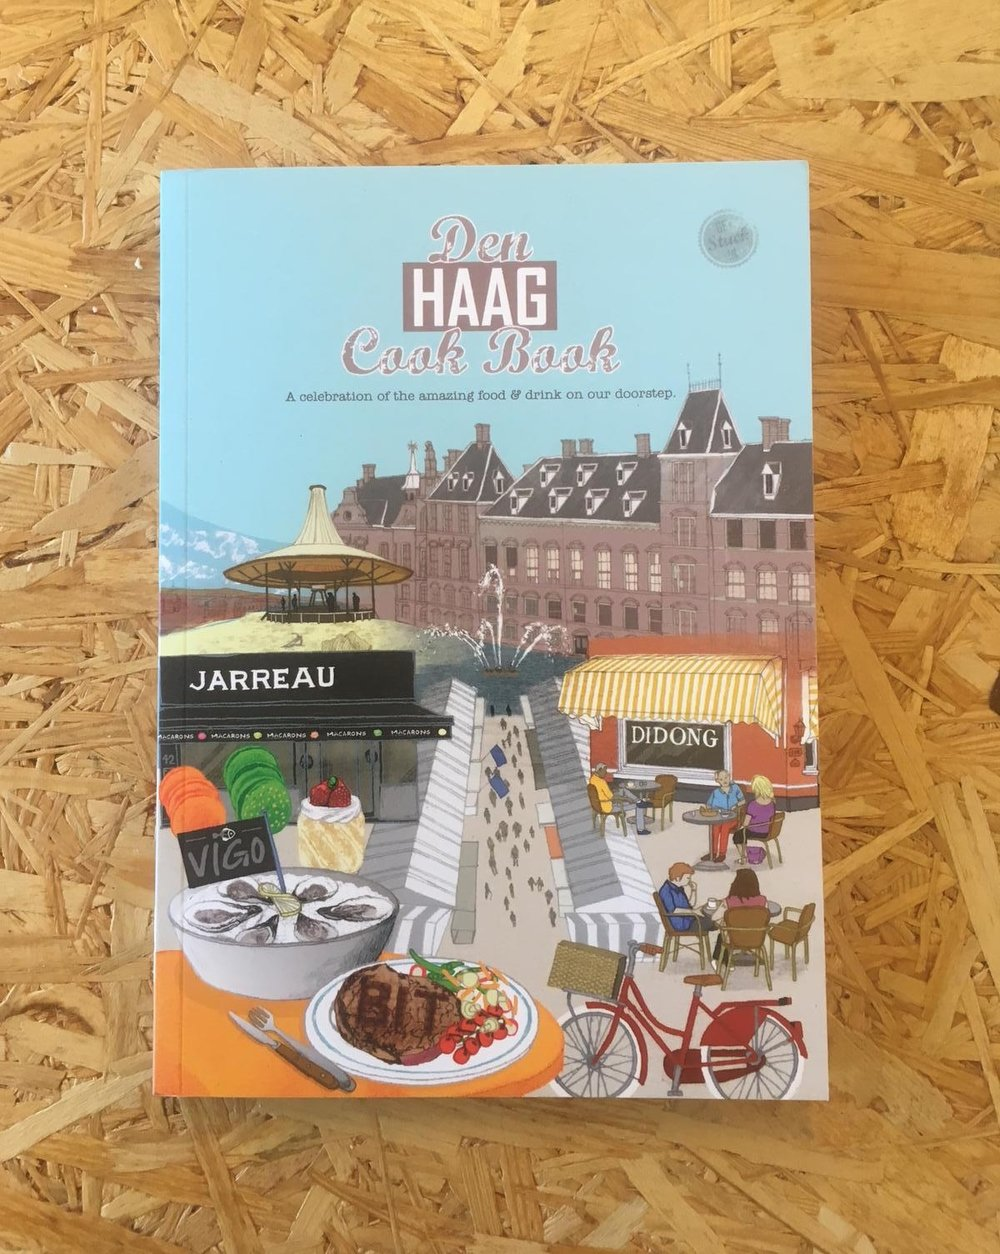 den haag cookbook.jpeg